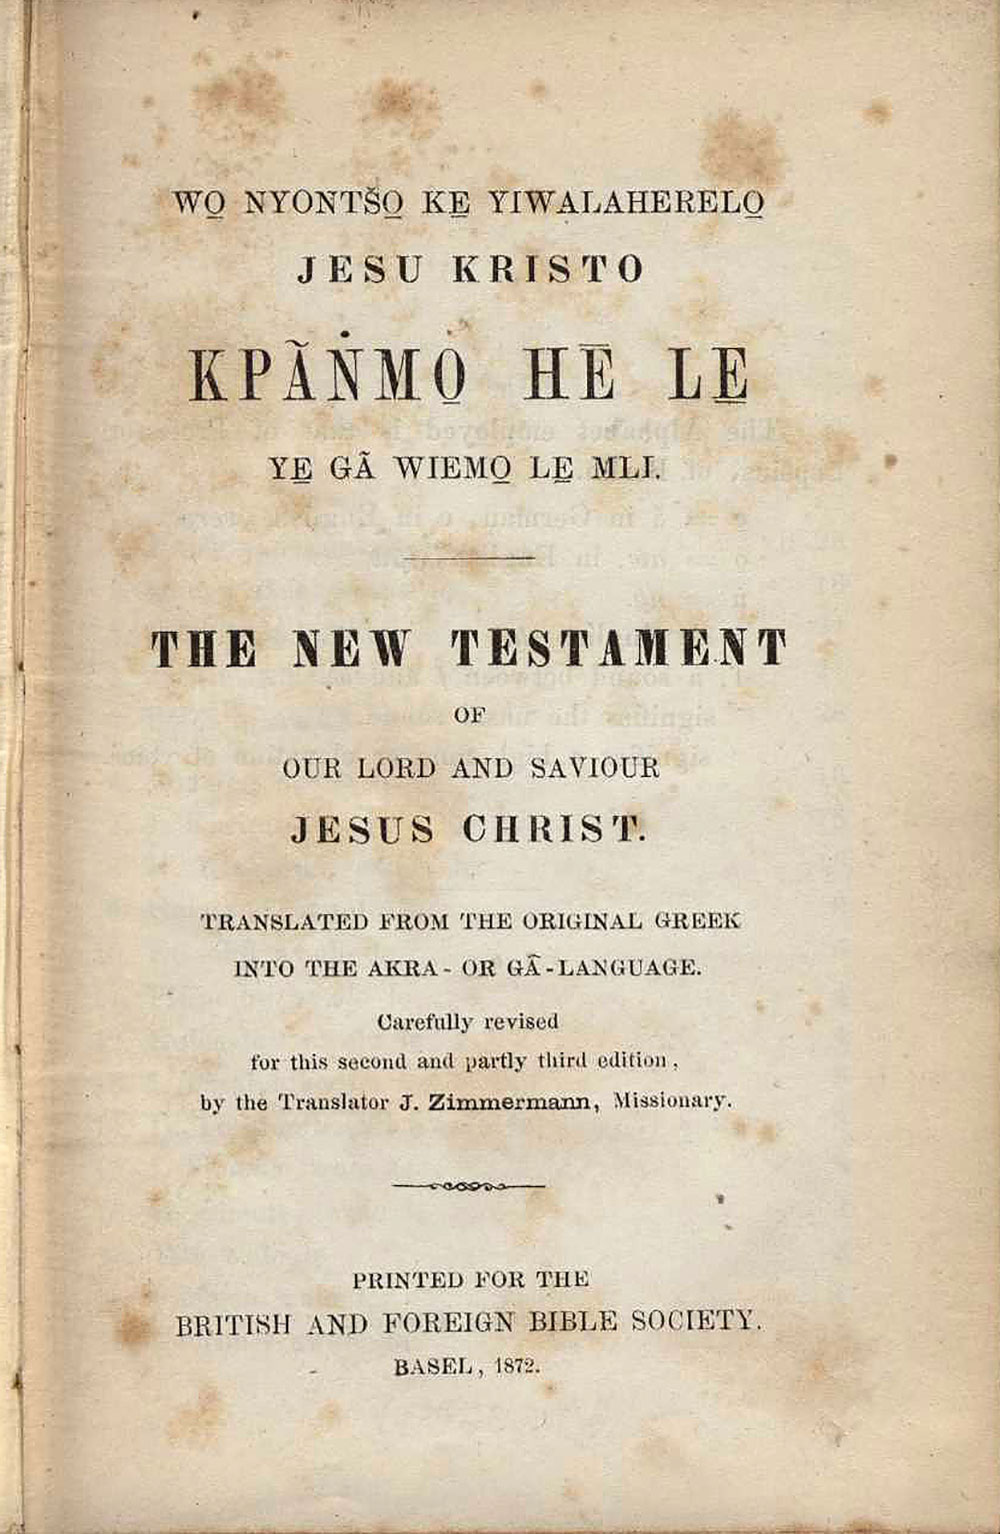 [New Testament in Accra]. <em>Wo Nyontso ke Yiwalaherelo Jesu Kristo Kpanmo he le ye ga wiemo le mli. The New Testament of our Lord and Saviour Jesus Christ.</em> Basel: British Foreign and Bible Society, 1872.